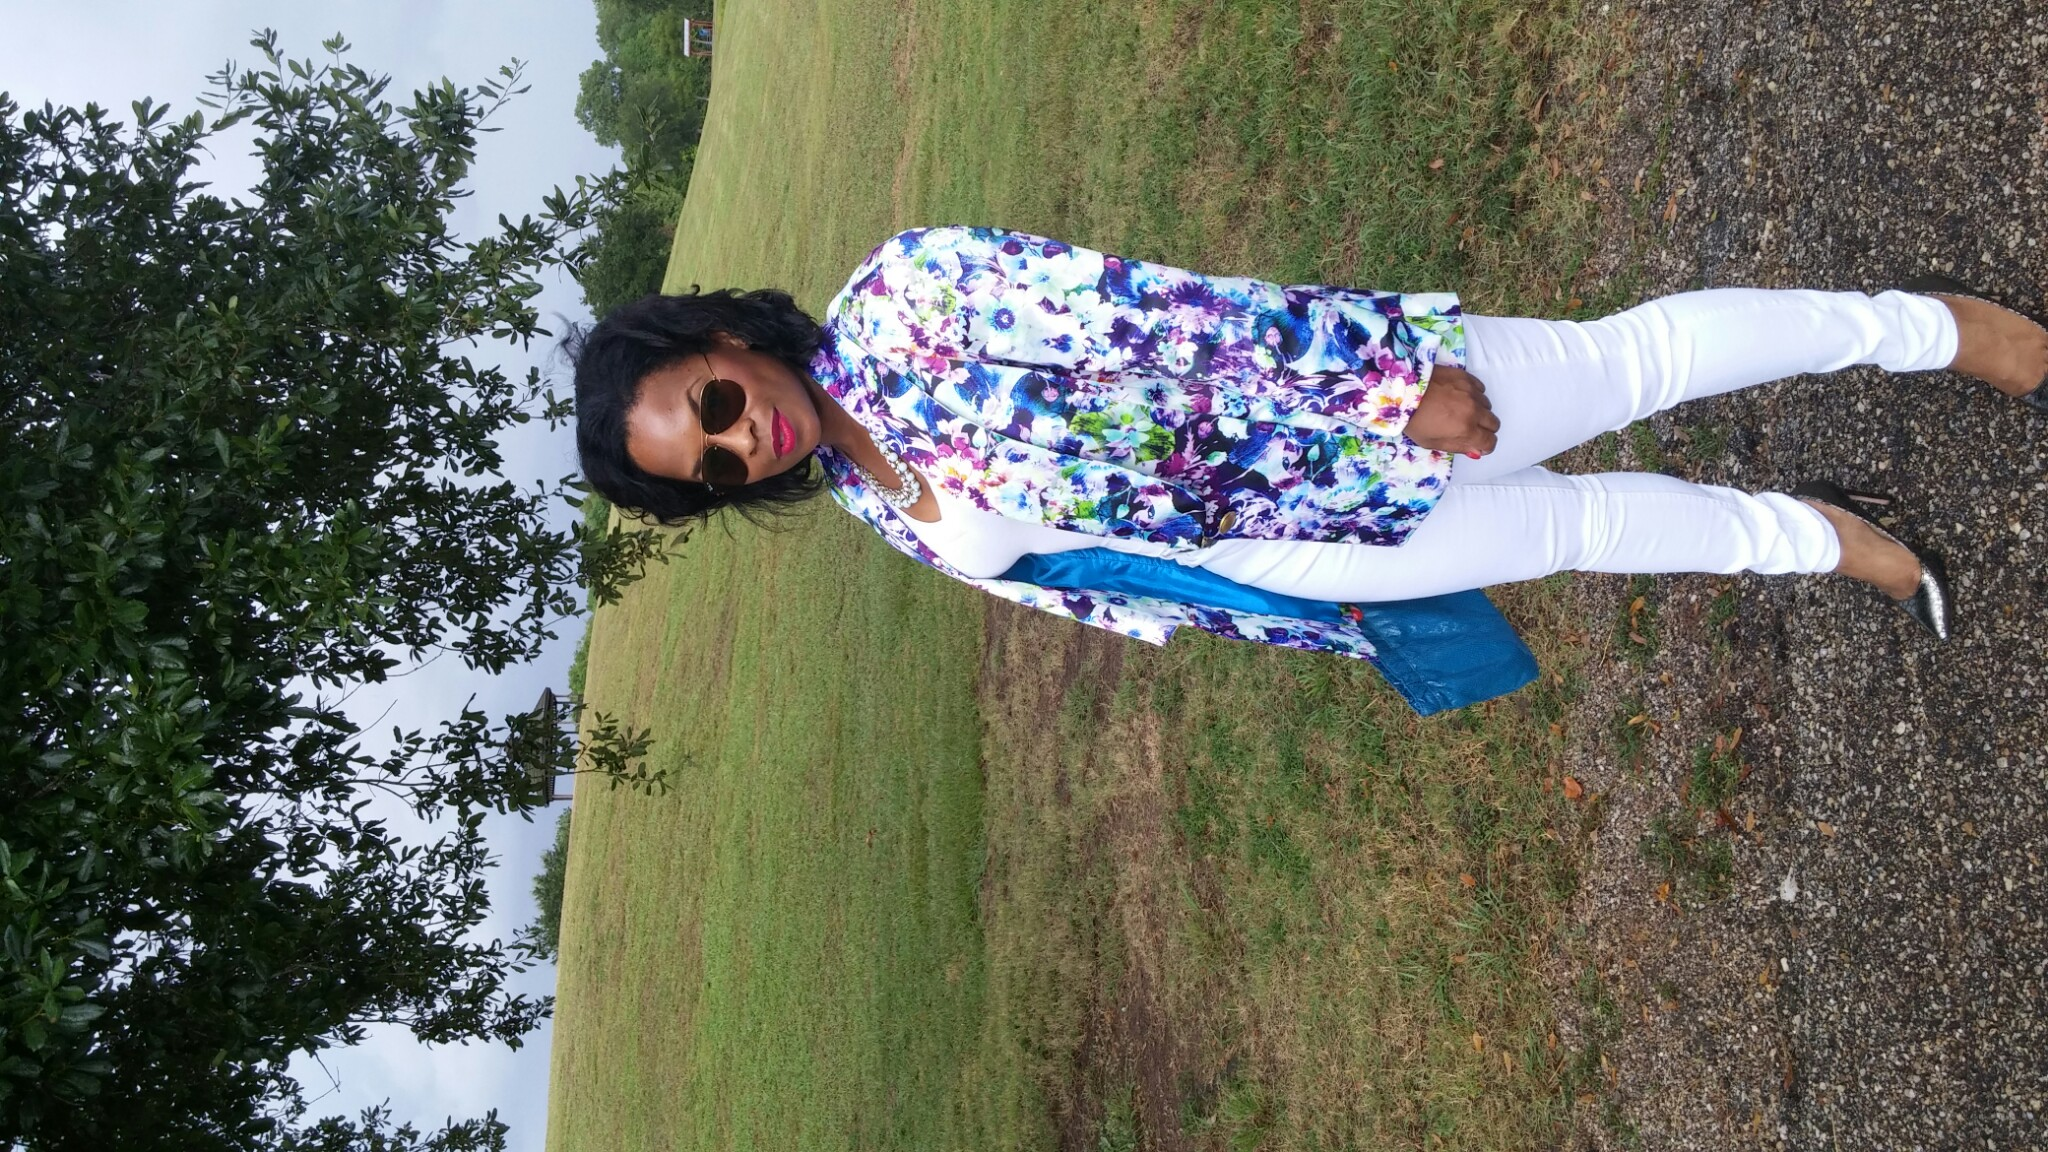 Shades: Ray-Ban  Blazer: DIY  Jeans: 7 For All Mankind